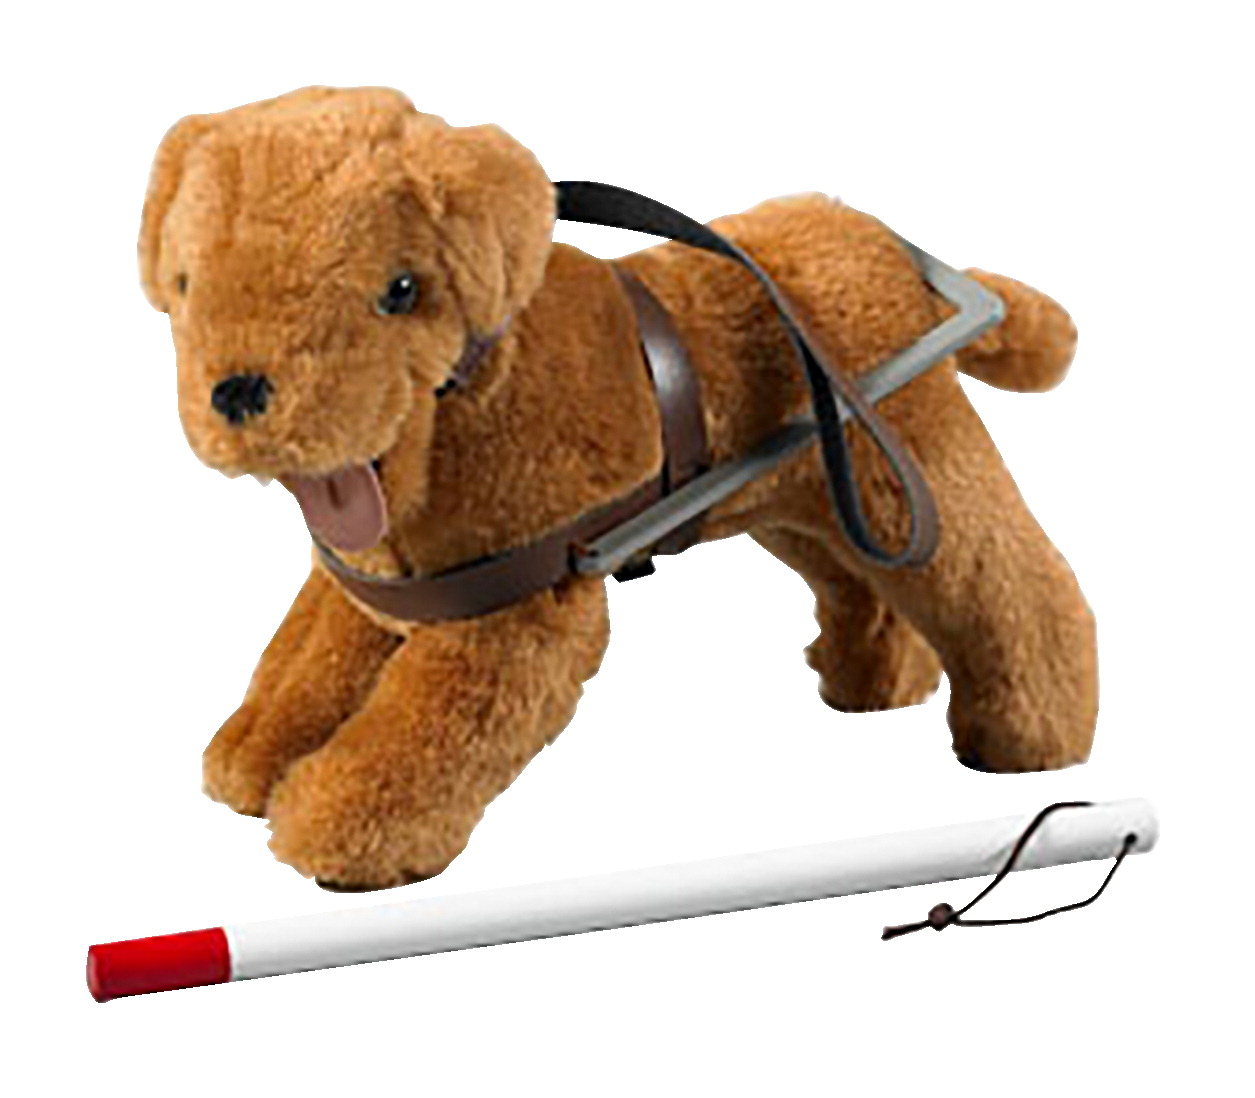 Set Of Dog Stuffed Animals, Seeing Eye Dog And Cane Soar Life Products